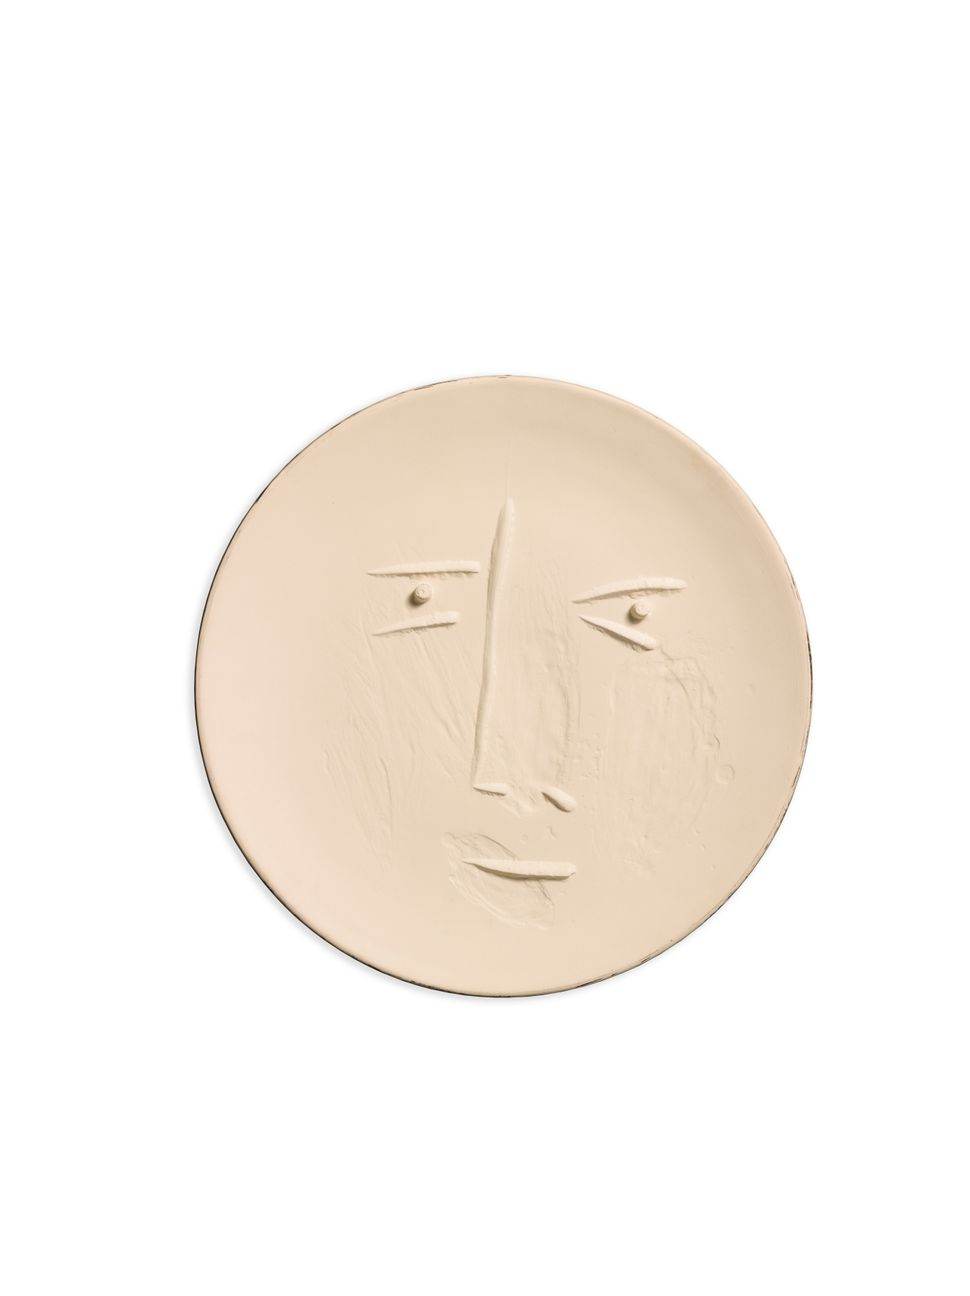 Pablo Picasso, Visage de face (Alain Ramié 442), Terre de faïence plate, 1960, incised 56/100 and U 100, partially galzed, wi